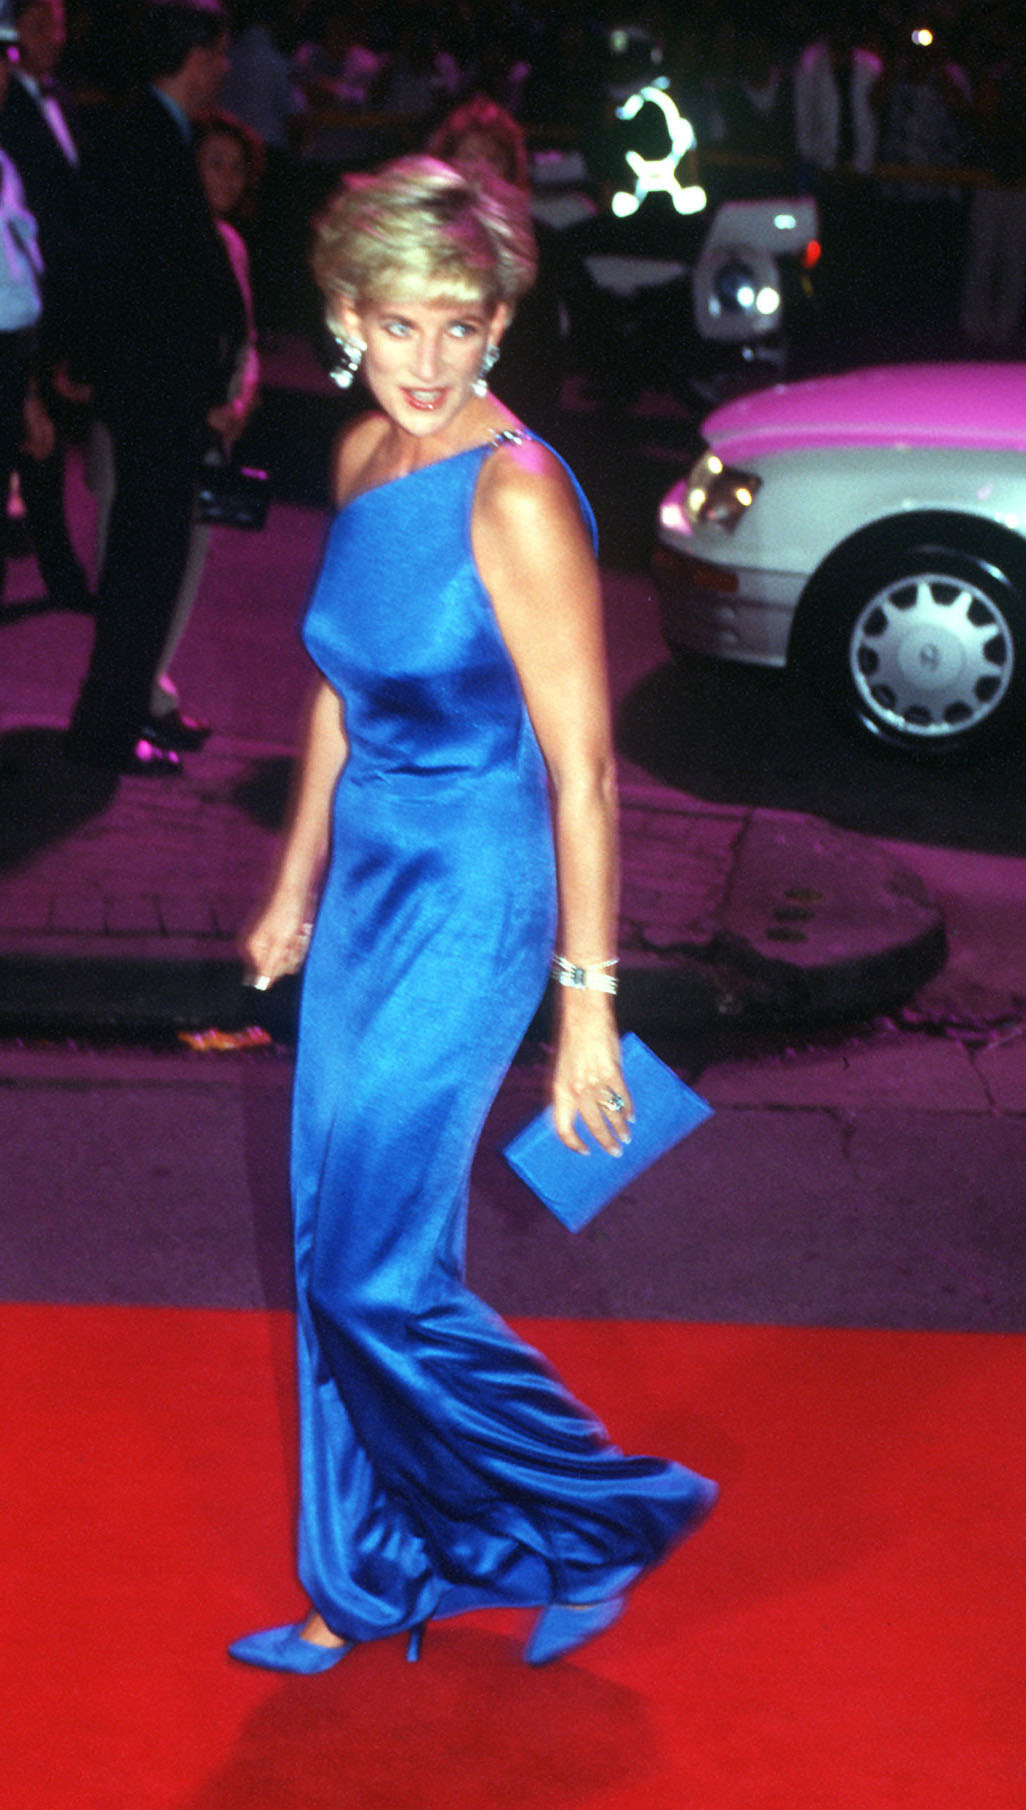 princess diana Princess diana, princess of wales, was one of the most adored members of the british royal family learn more on biographycom.